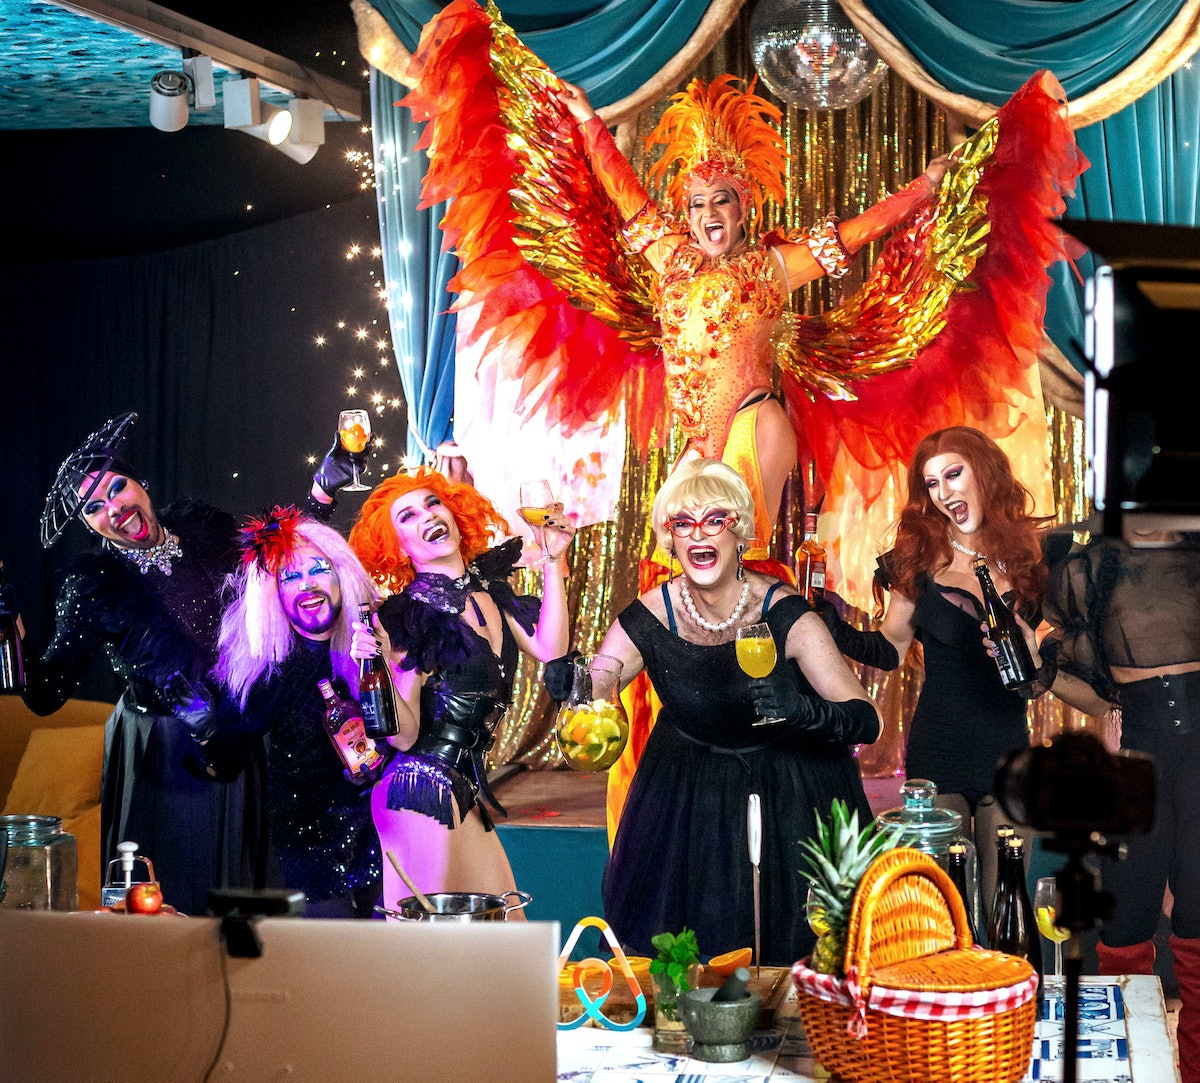 A group of drag queens dance and hold glasses of sangria for a virtual show.